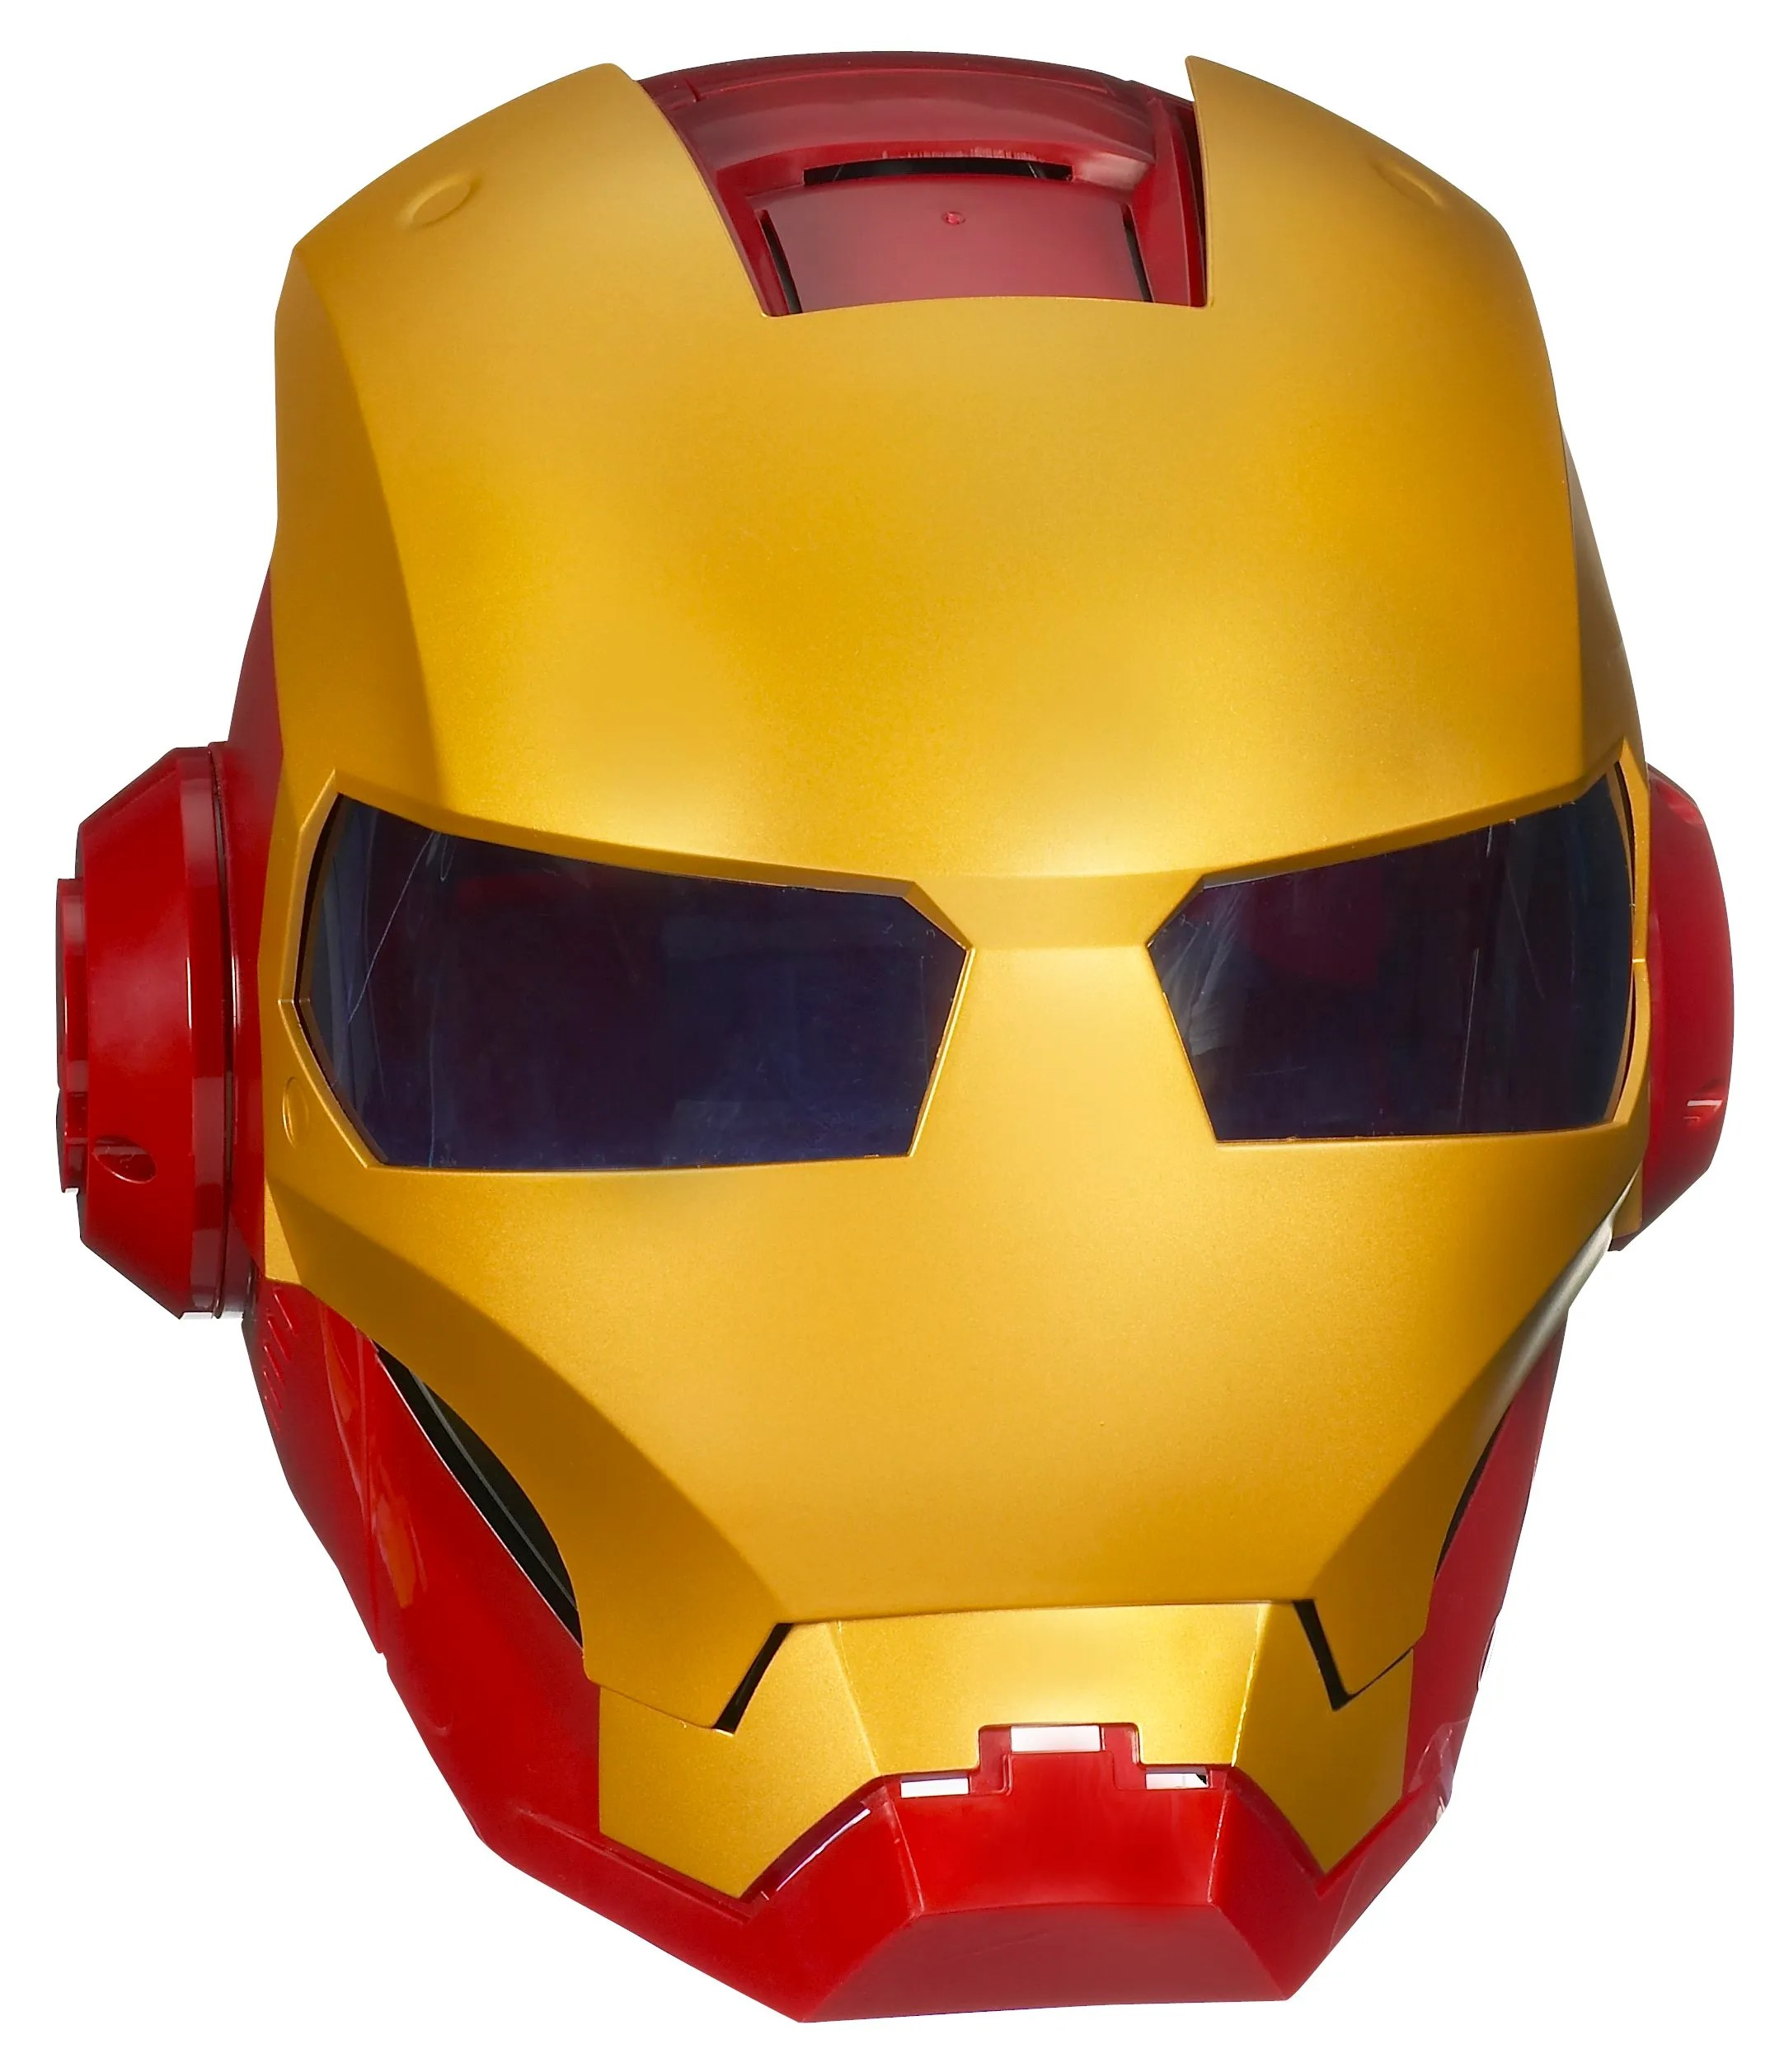 All the New IRON MAN 2 Toys in High Resolution Including ...